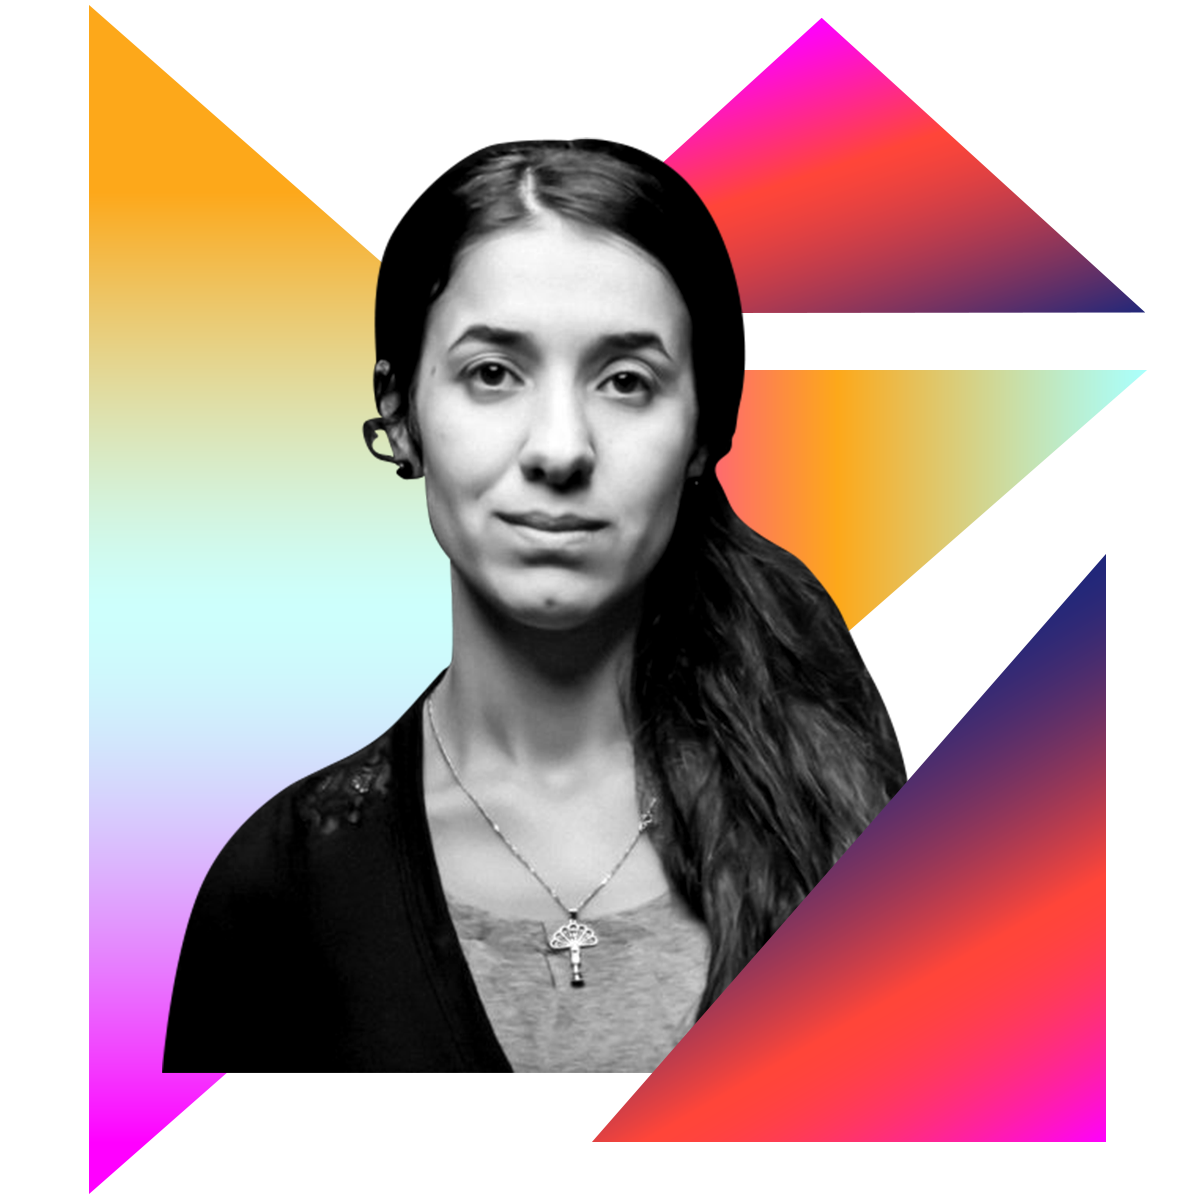 Photo illustration of Nadia Murad in black and white surrounded by colored gradients